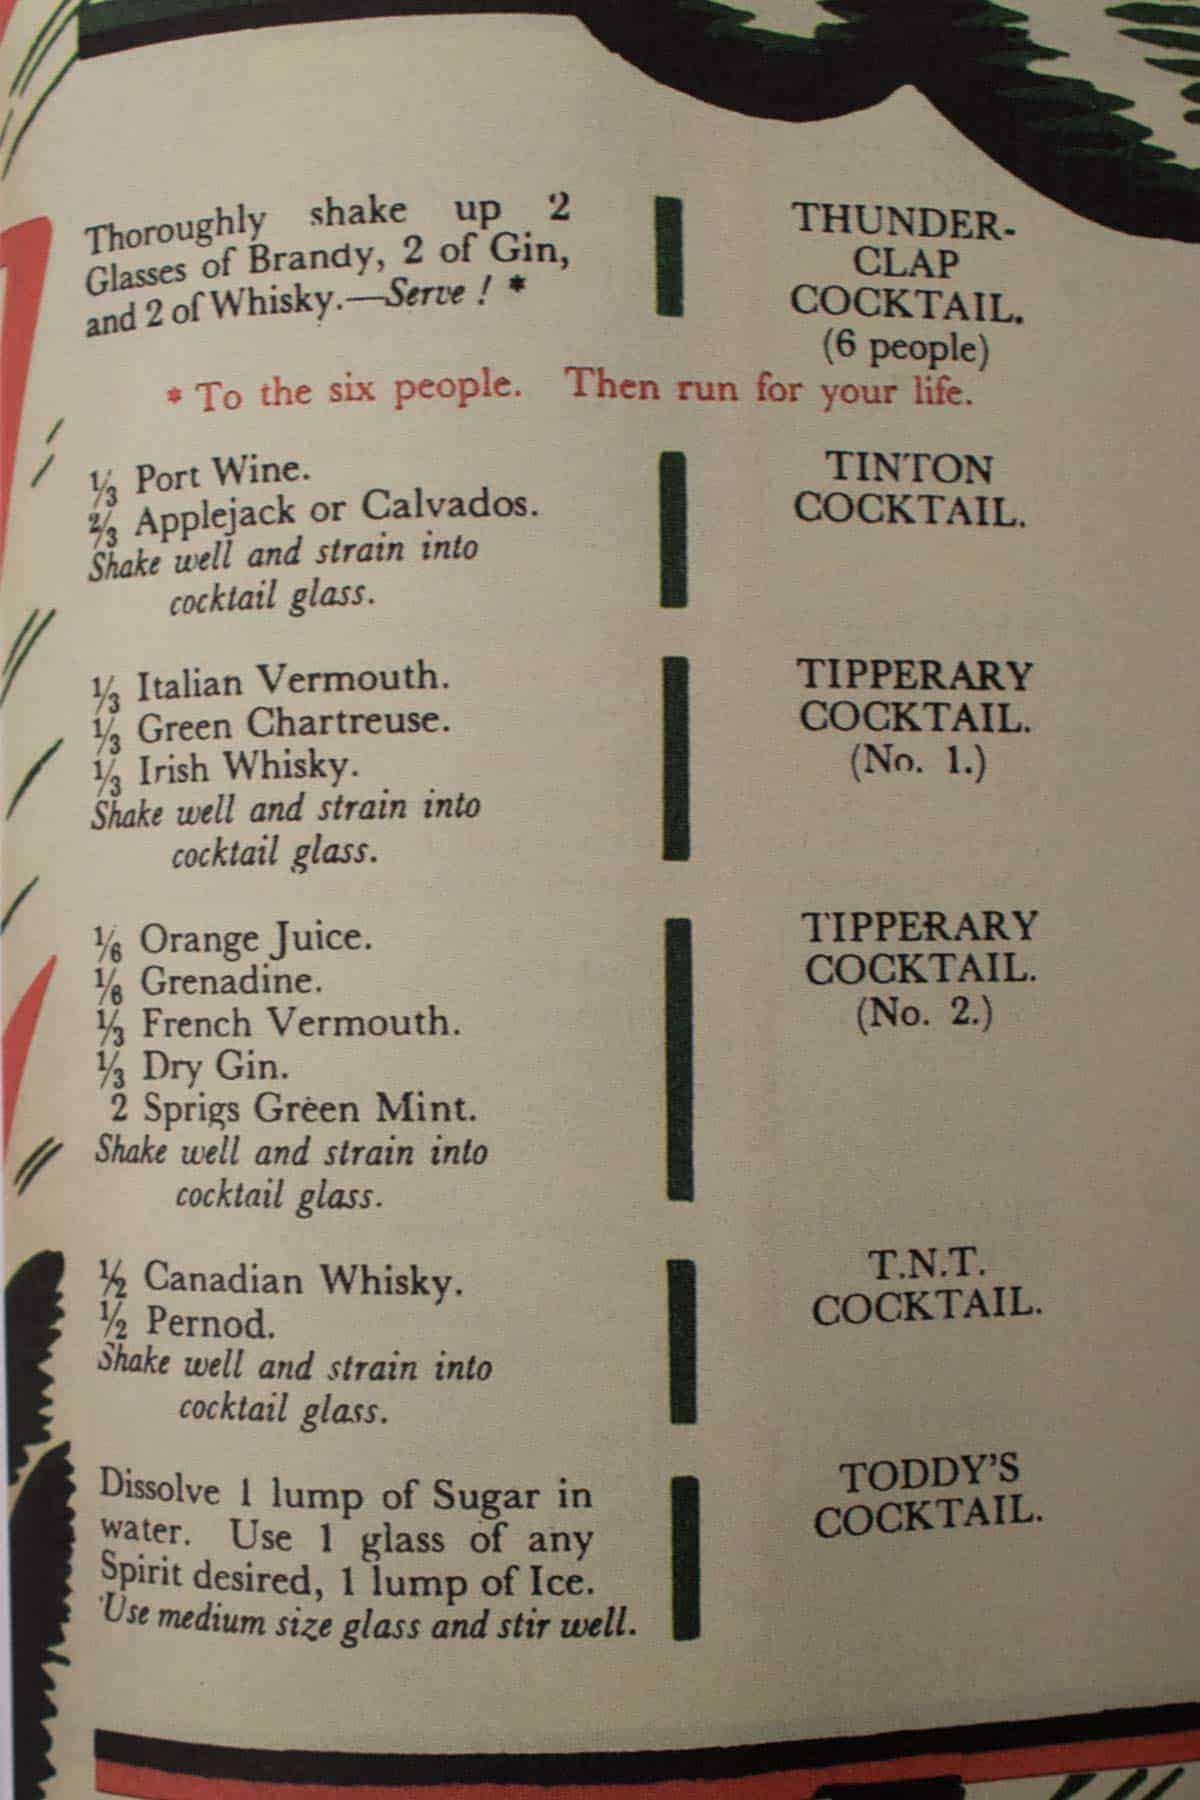 Cocktail Recipes from the The Savoy Cocktail Book, Originally Published in 1930